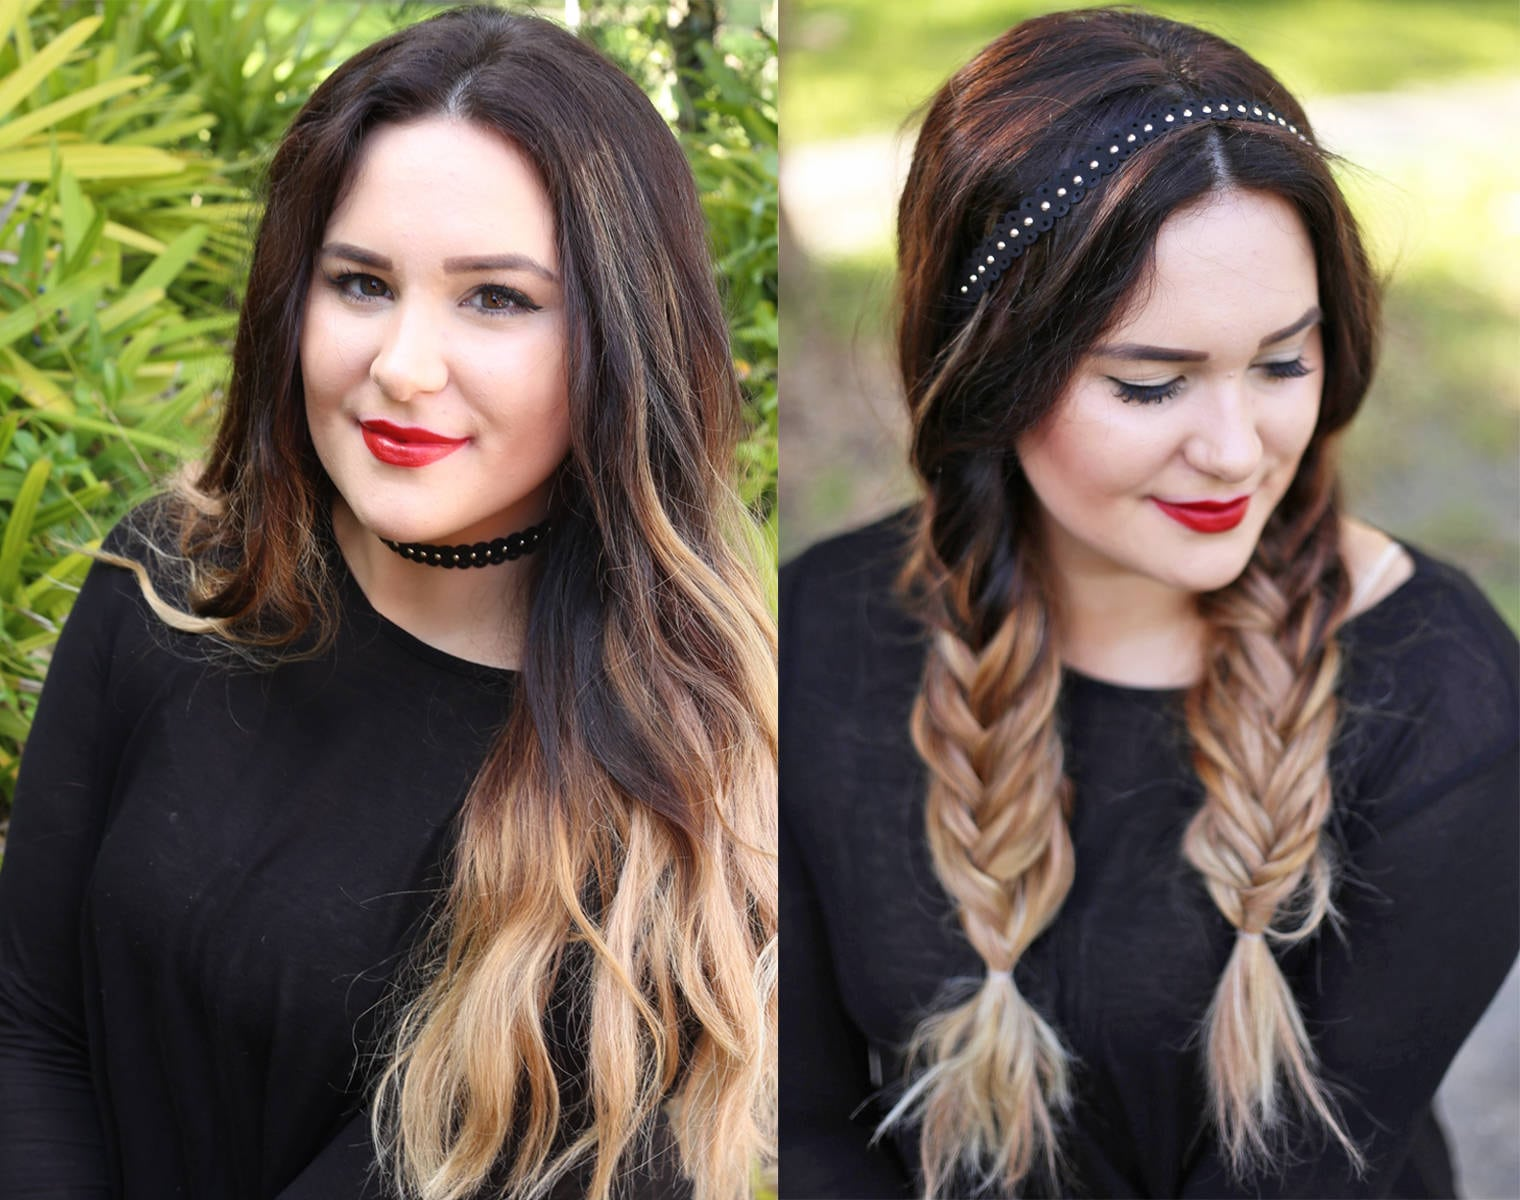 Beauty and fashion blogger Mash Elle shows how you can use a choker as a hair accessory in this fishtail ponytail tutorial